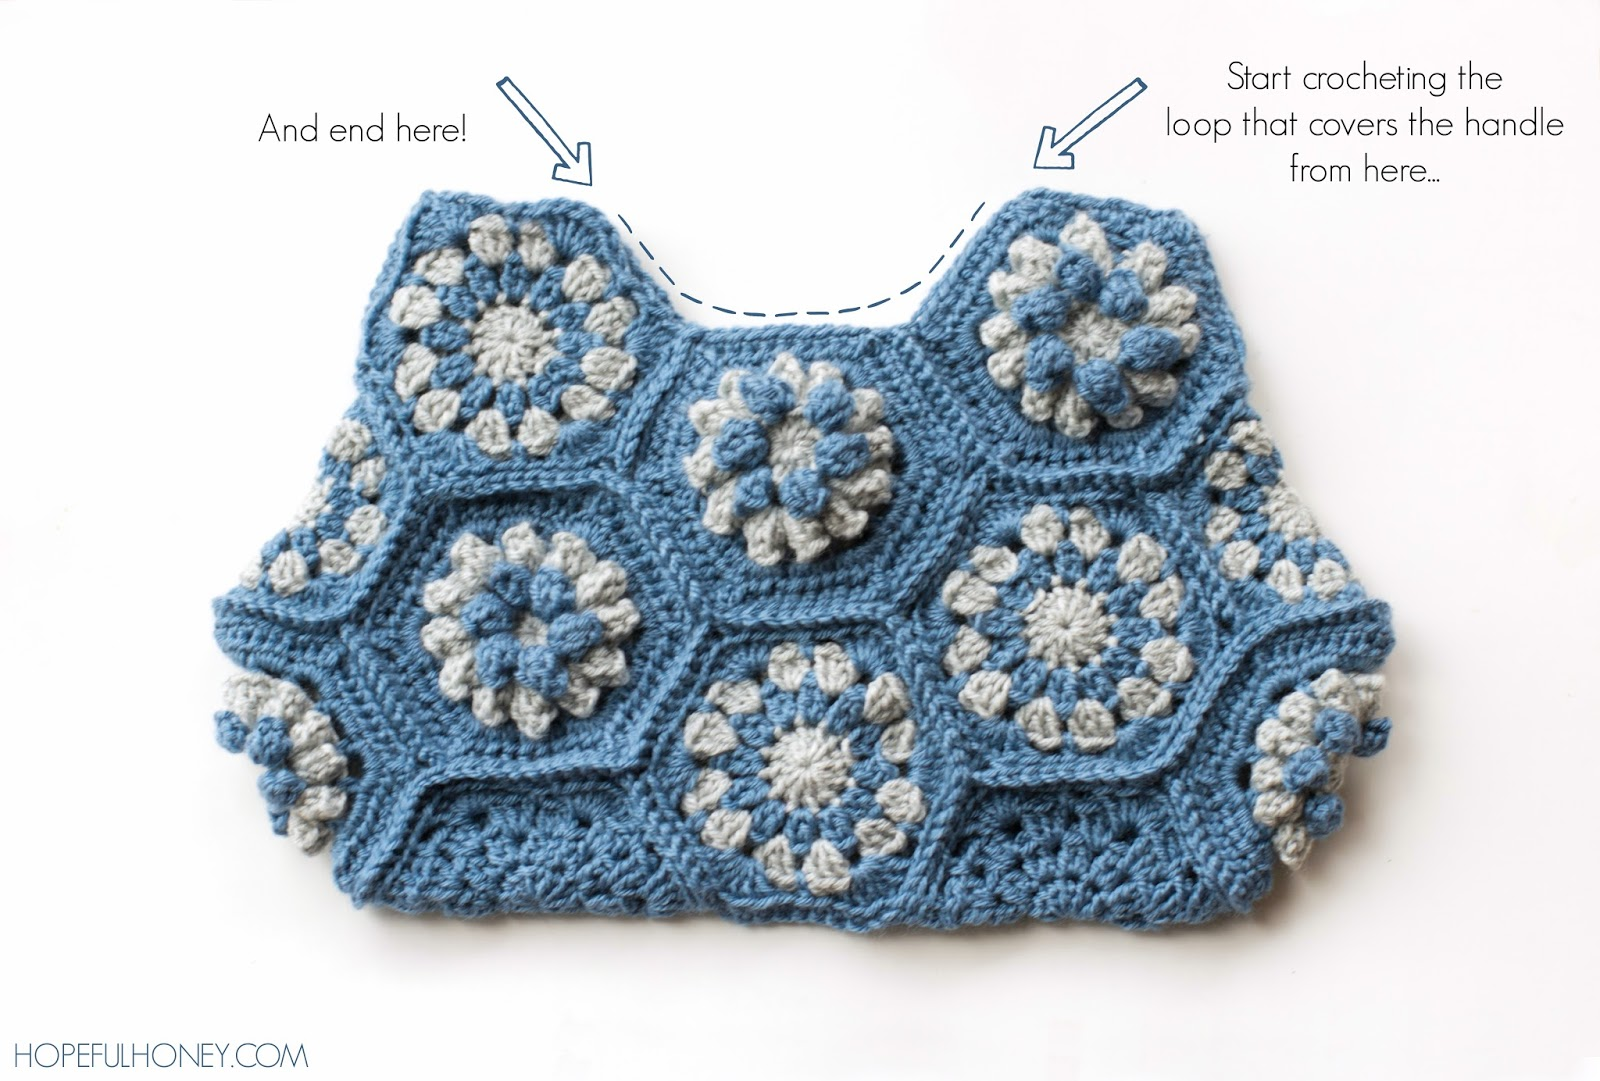 ... Honey Craft, Crochet, Create: Dahlia Hexagon Handbag Crochet Pattern